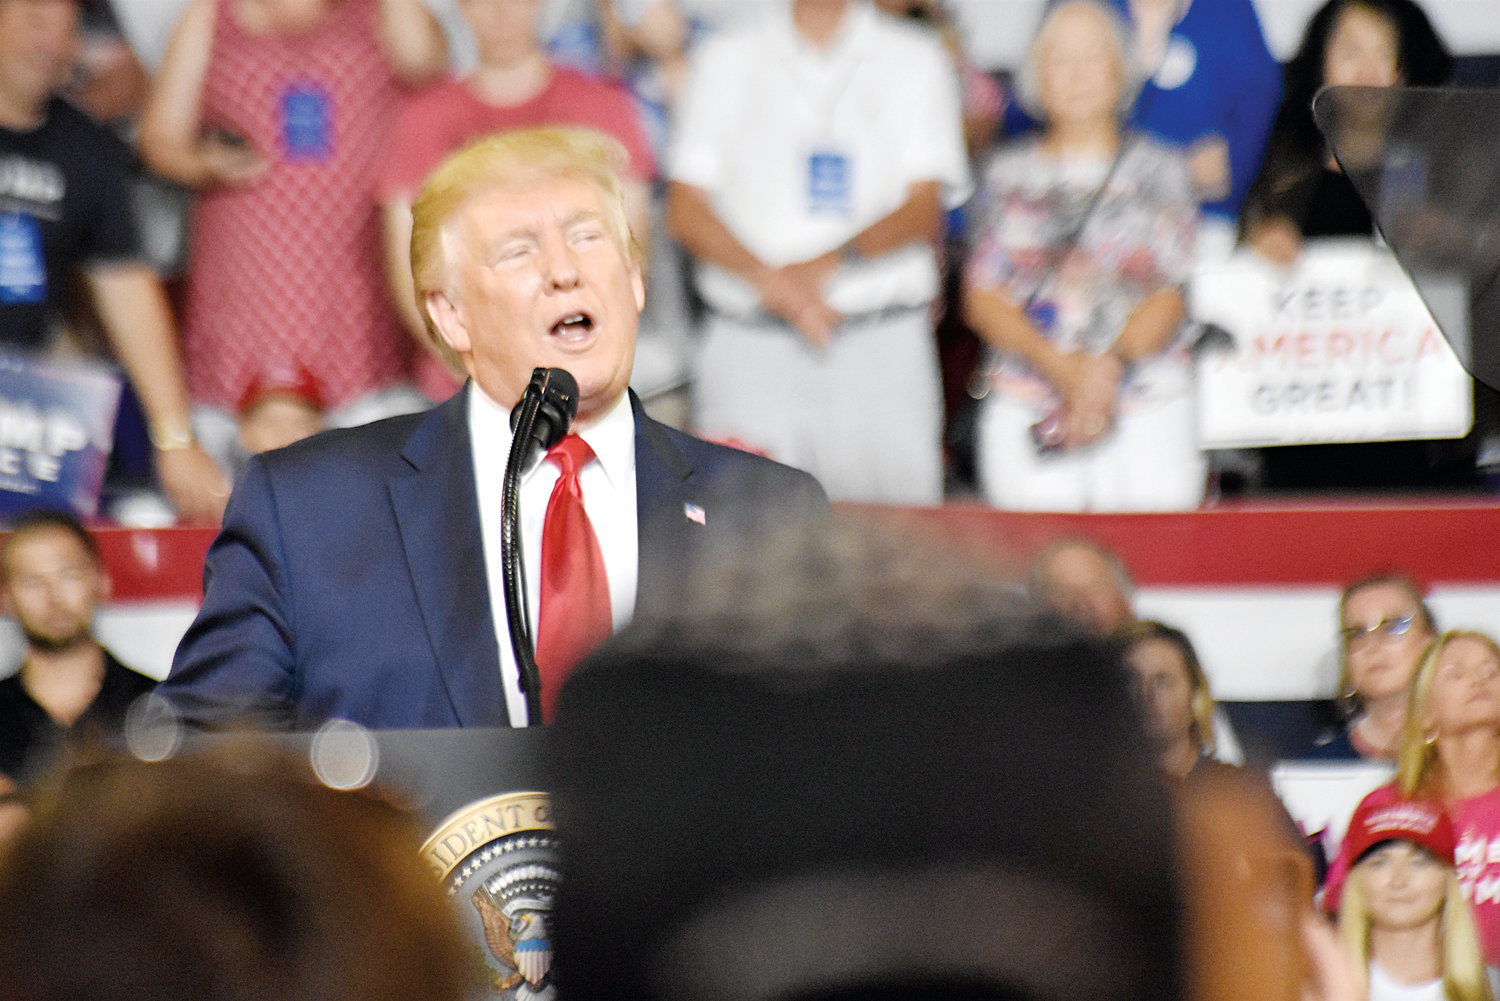 President Donald Trump addresses the crowd during a Keep America Great campaign rally Wednesday at East Carolina University's Minges Coliseum.